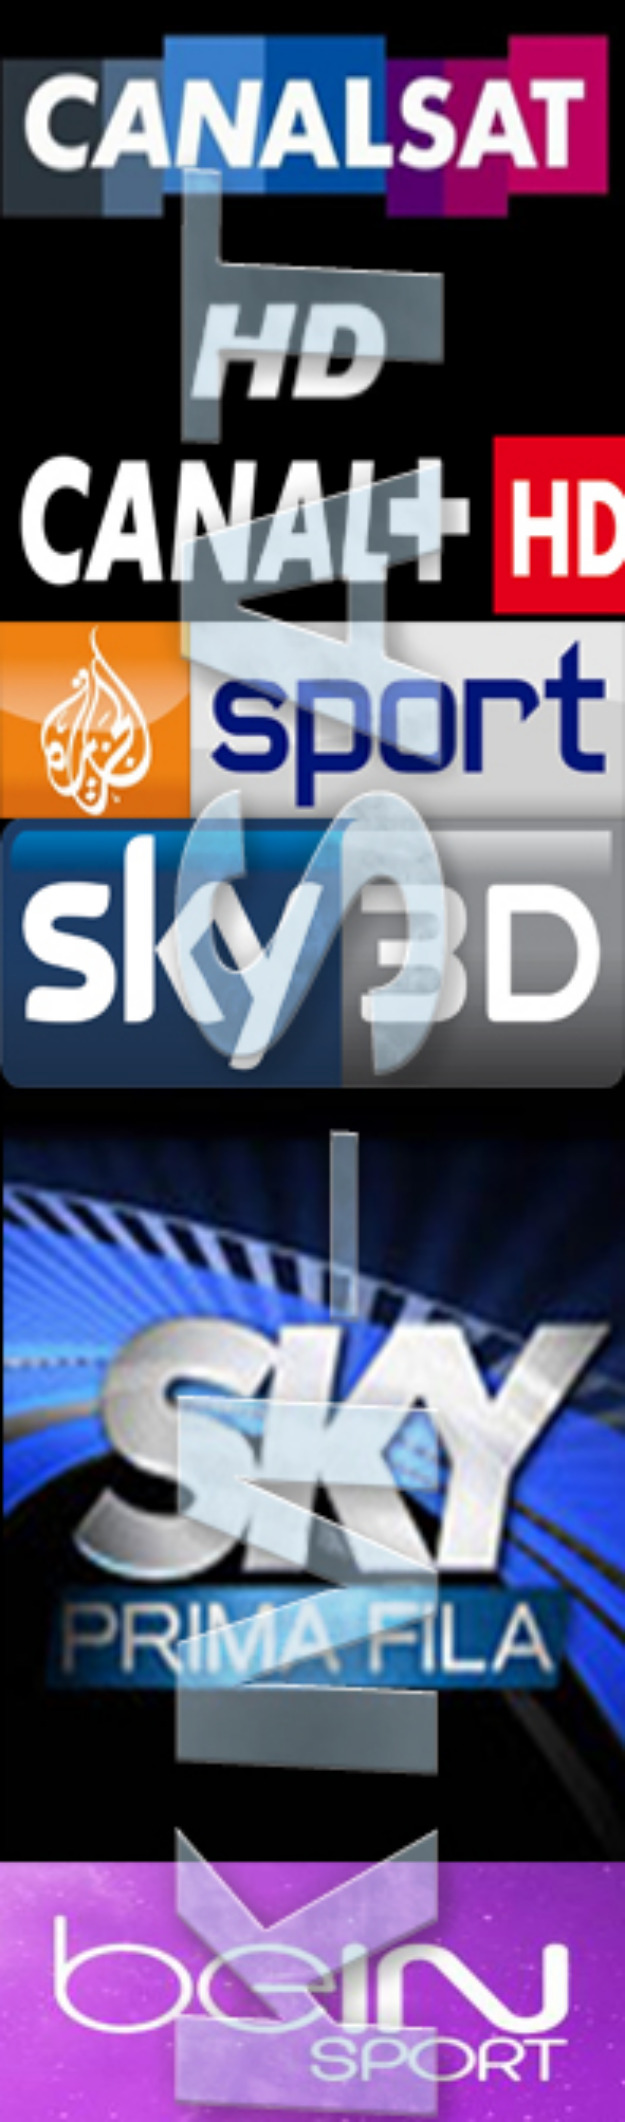 Serveur Ultra Stable CCcam Mgcamd 3D HD HD bon sport sur les 48 HDOcs Orange France